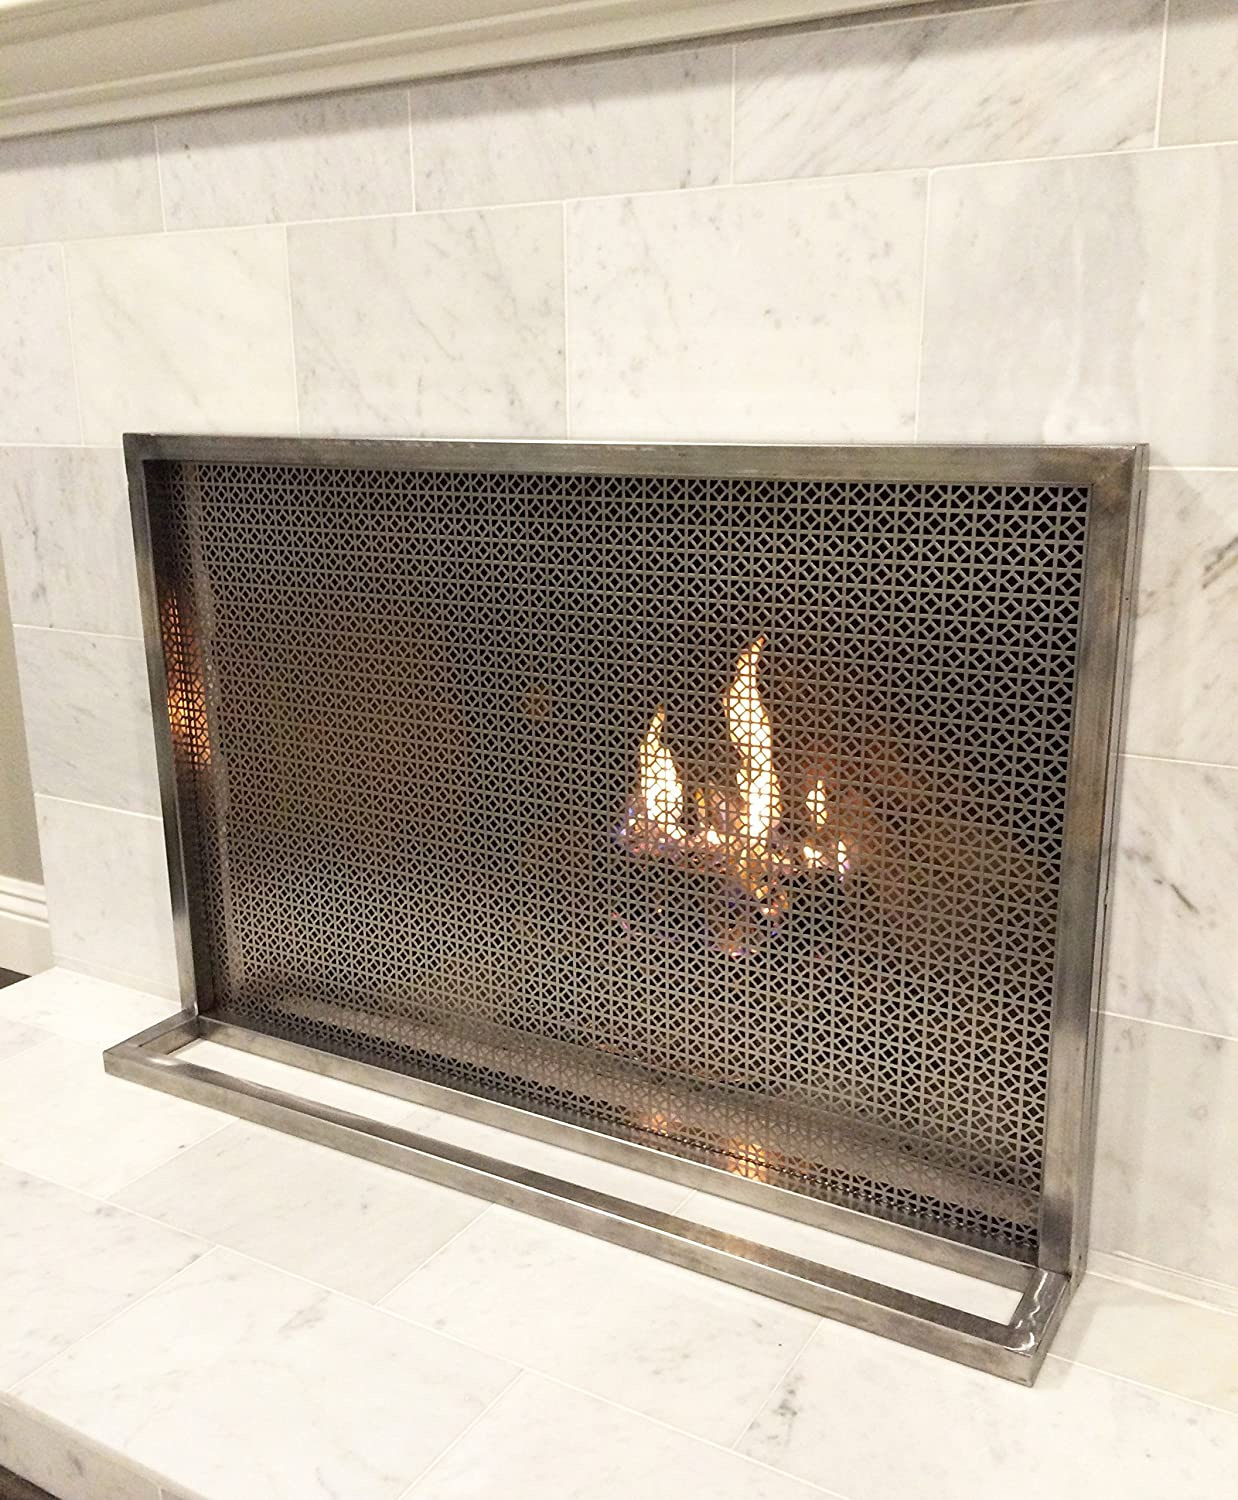 Modern Fireplace Screens New Amazon Ima Fireplace Screen Handmade